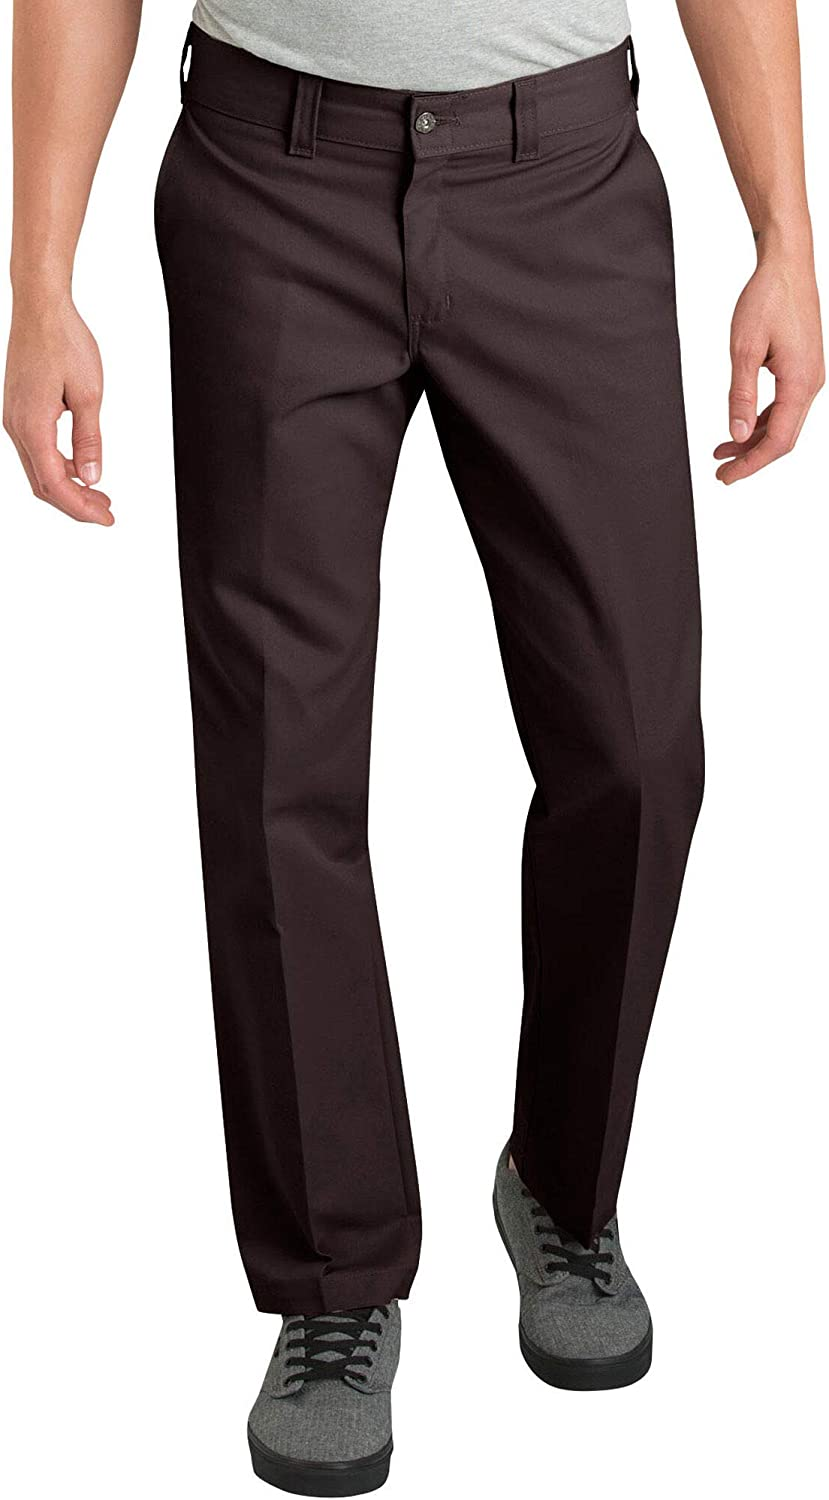 Dickies 67 Slim Fit Straight Leg Work Pants